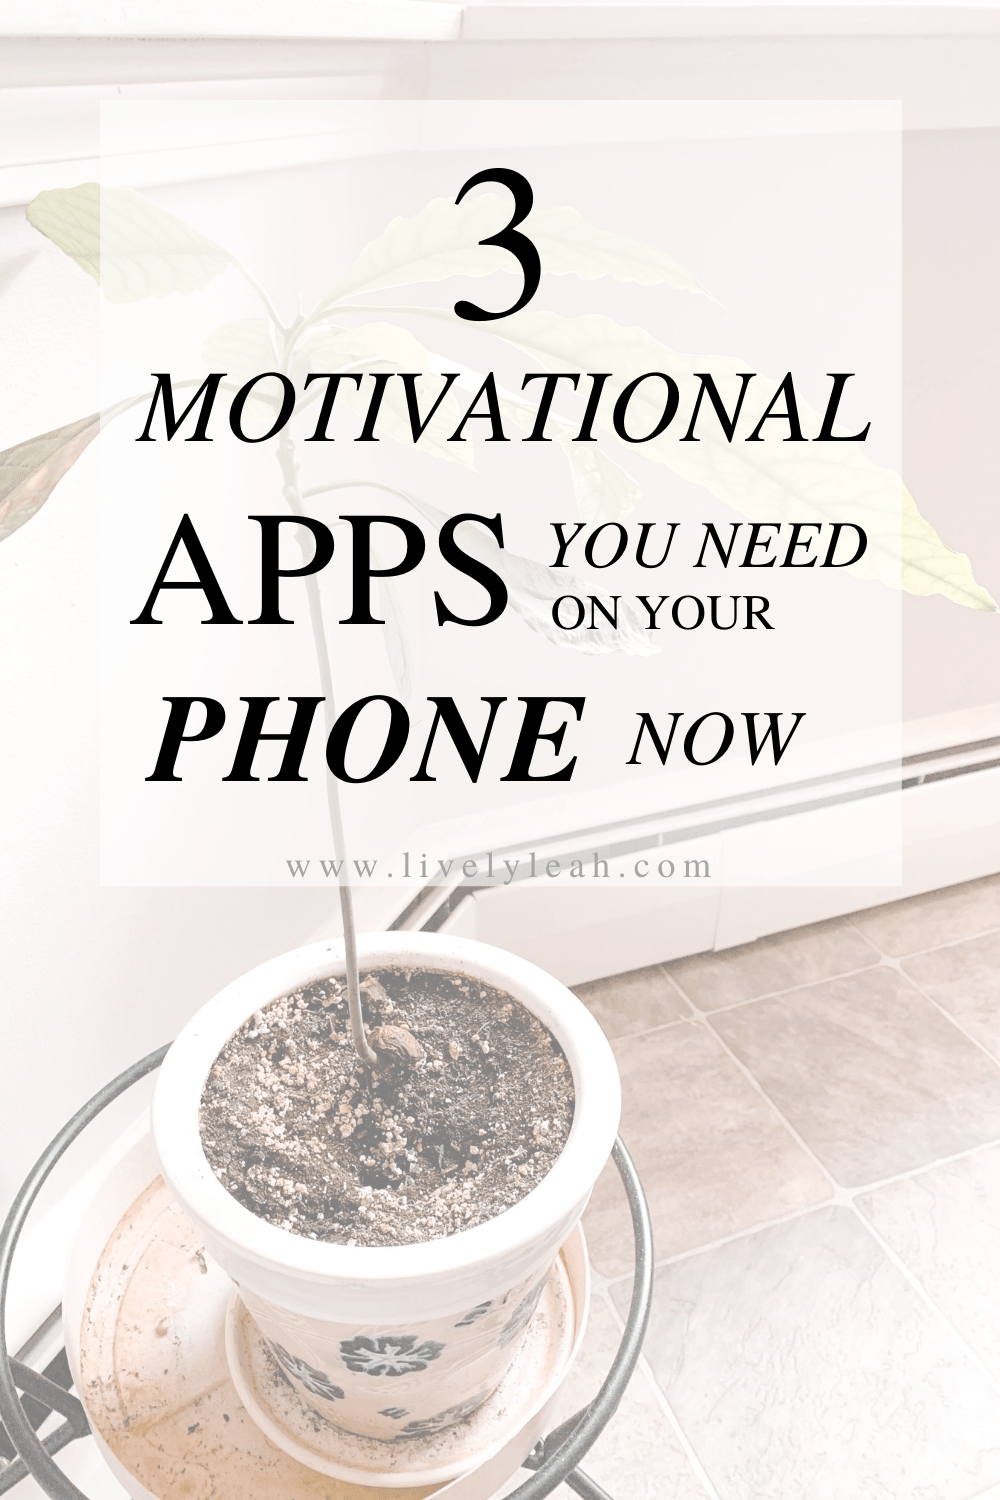 Motivational Apps